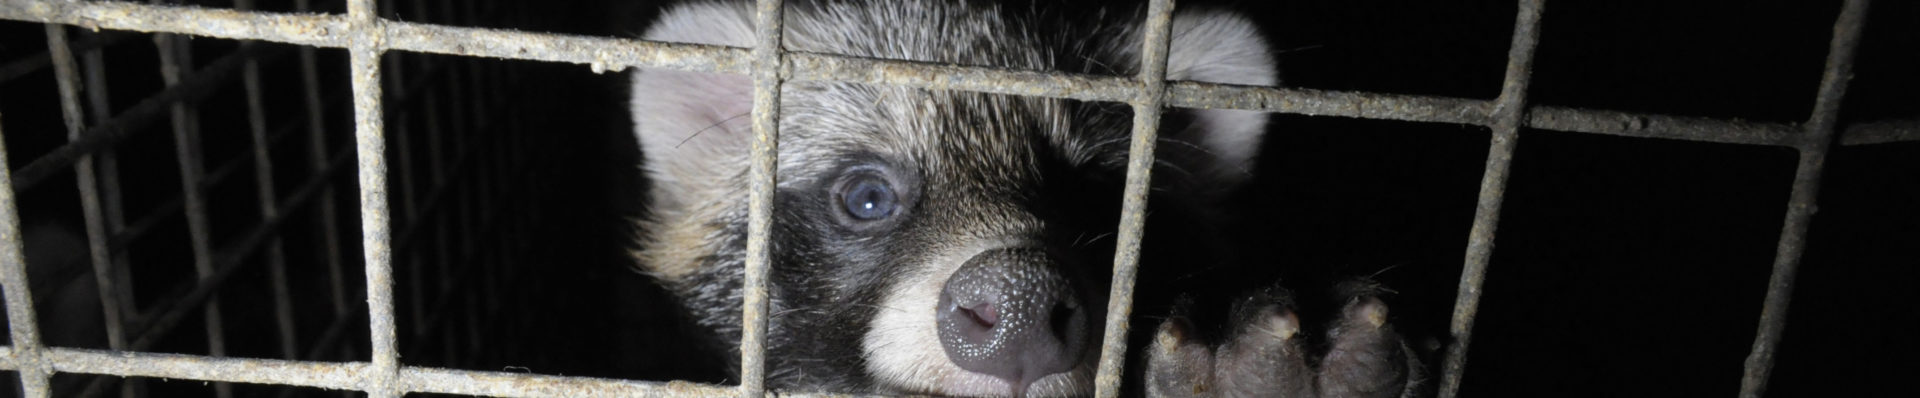 International organisations urge Czech Senate to end fur farming